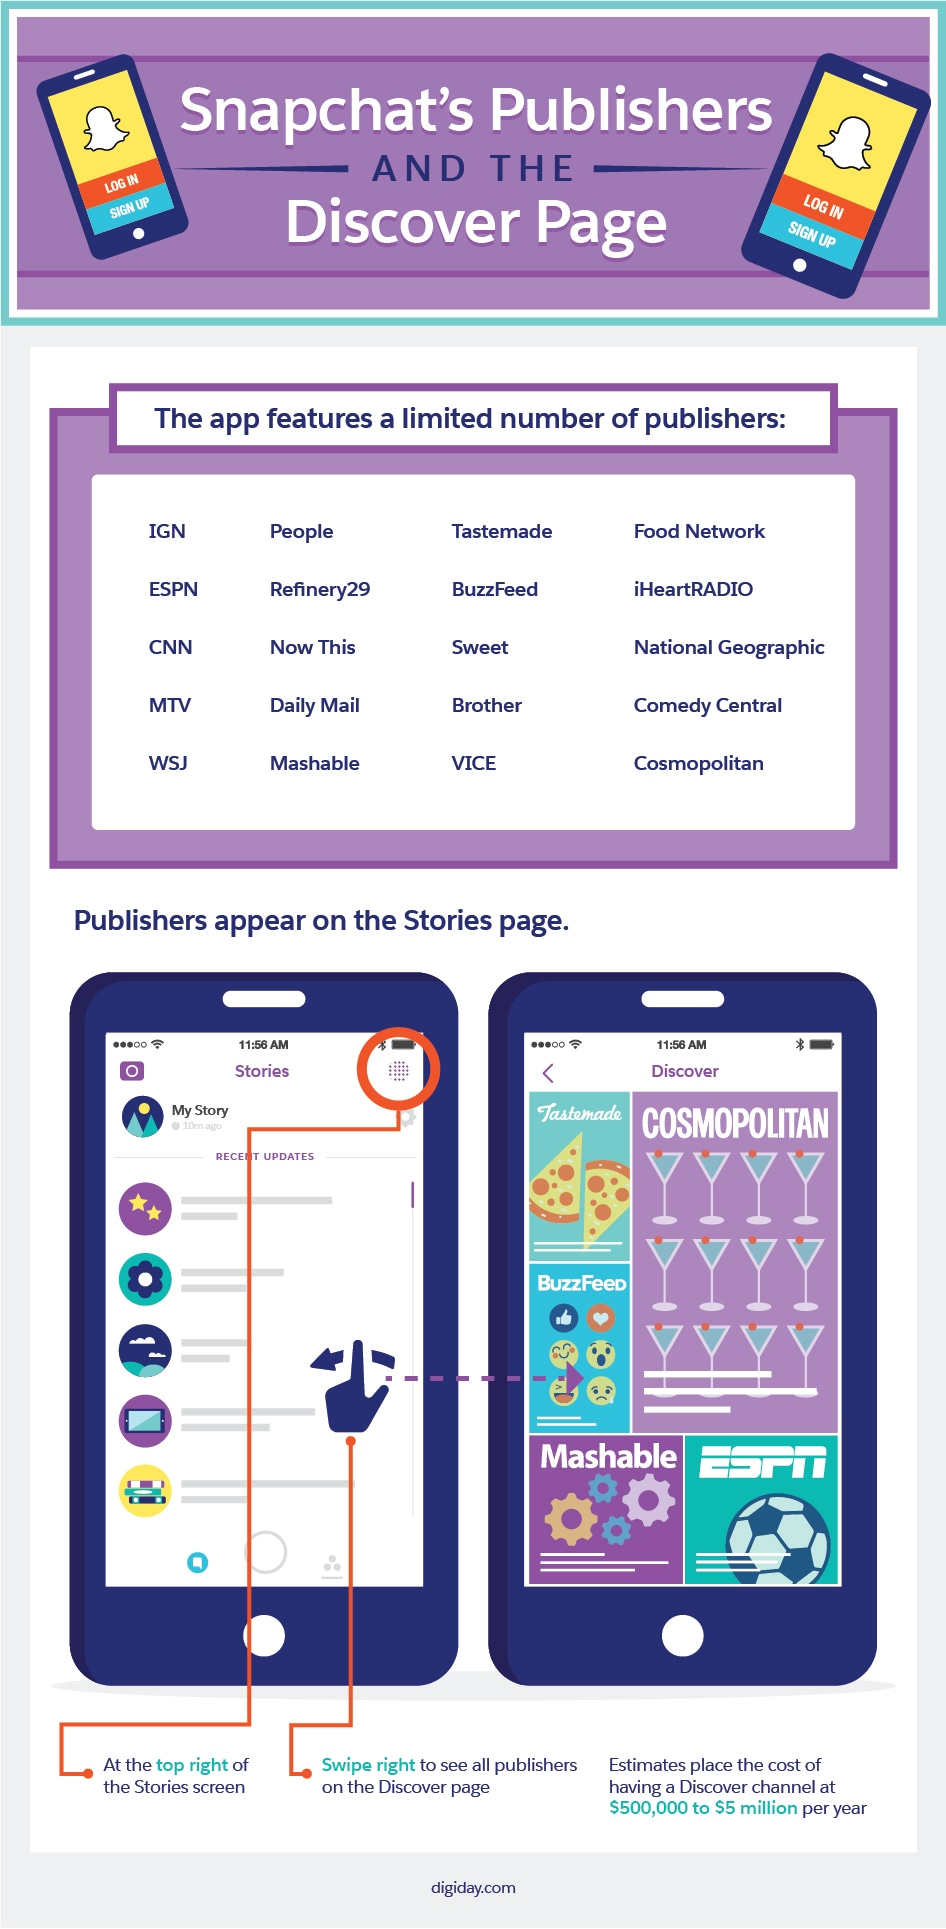 Snapchat's Publishers and the Discover Page